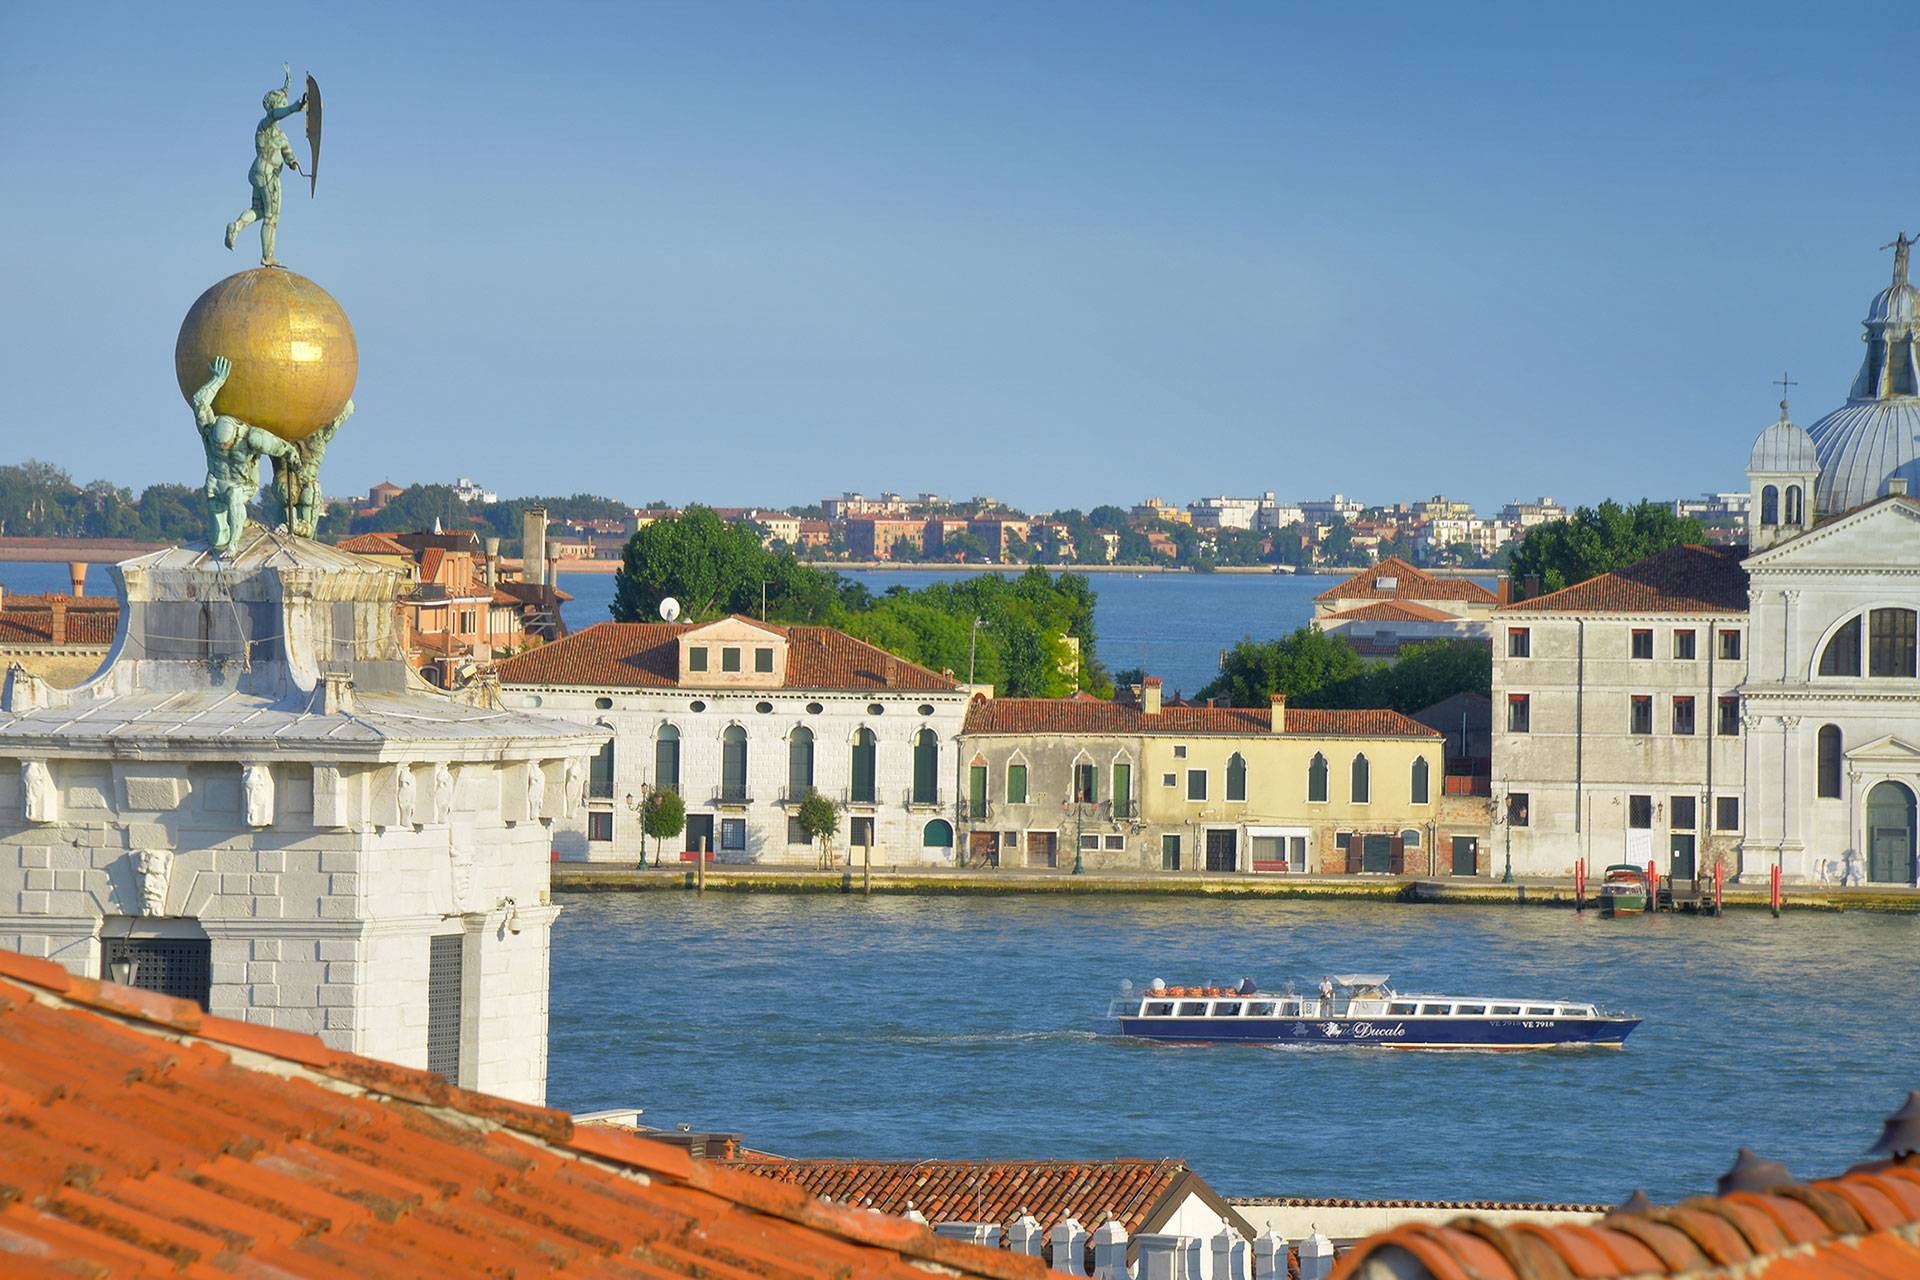 view from the altana on the Giudecca Island